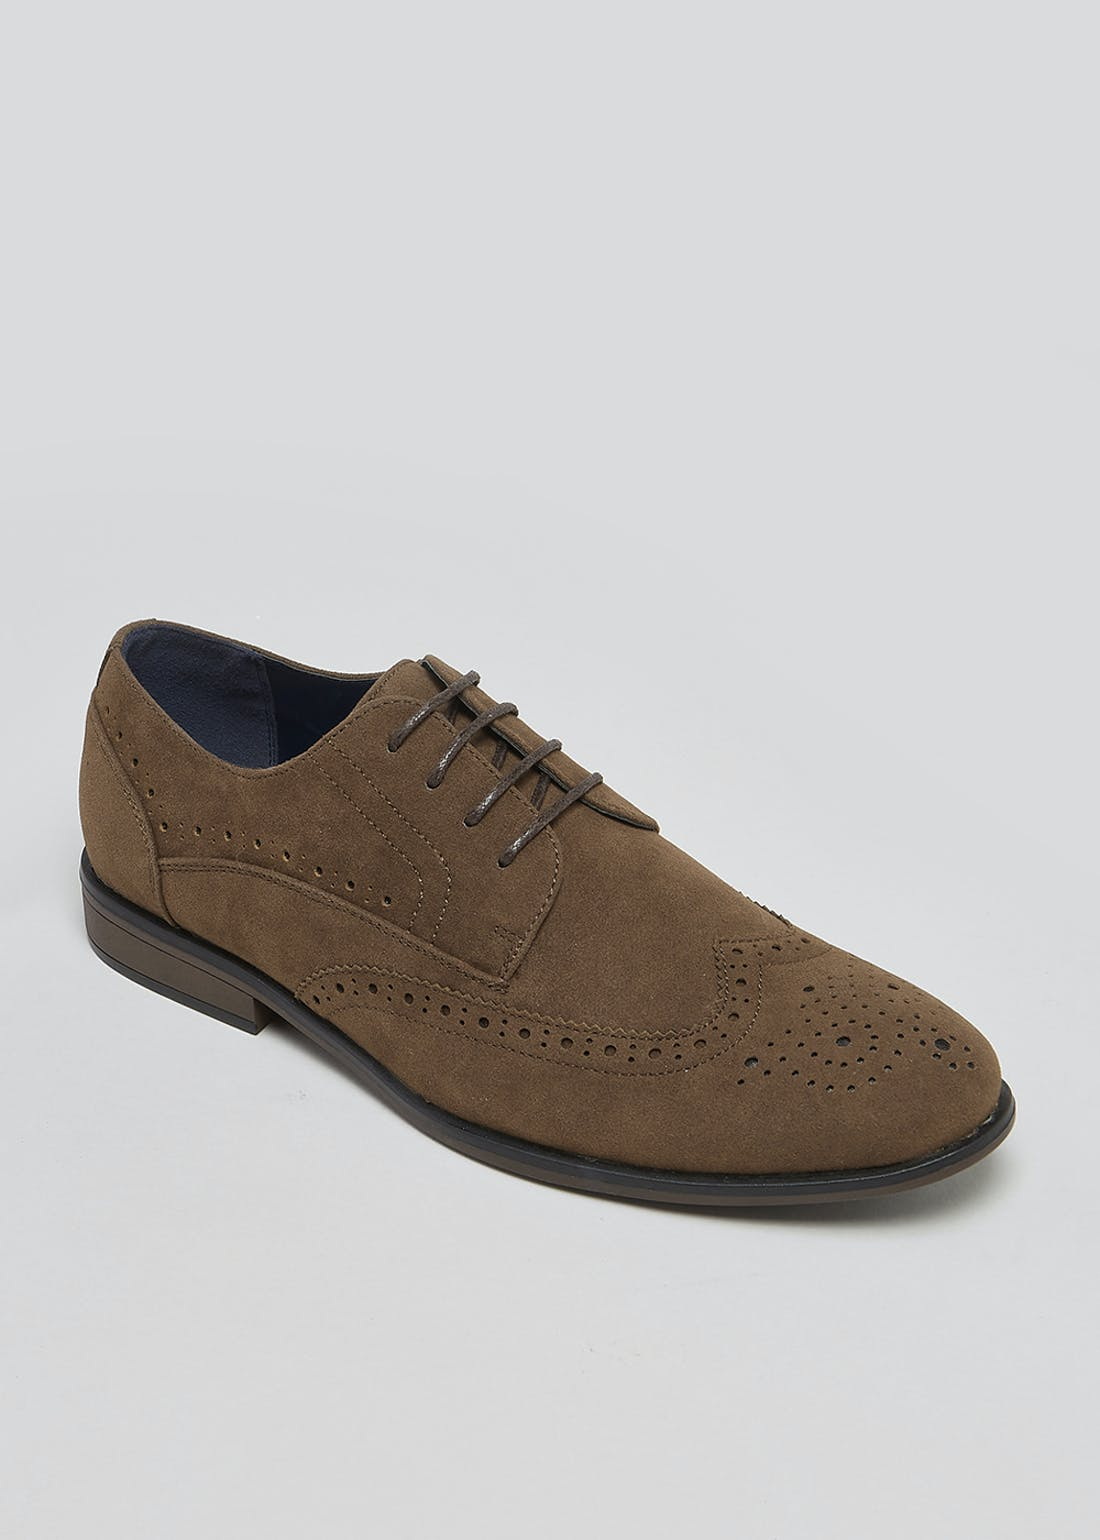 Brown Suedette Brogues